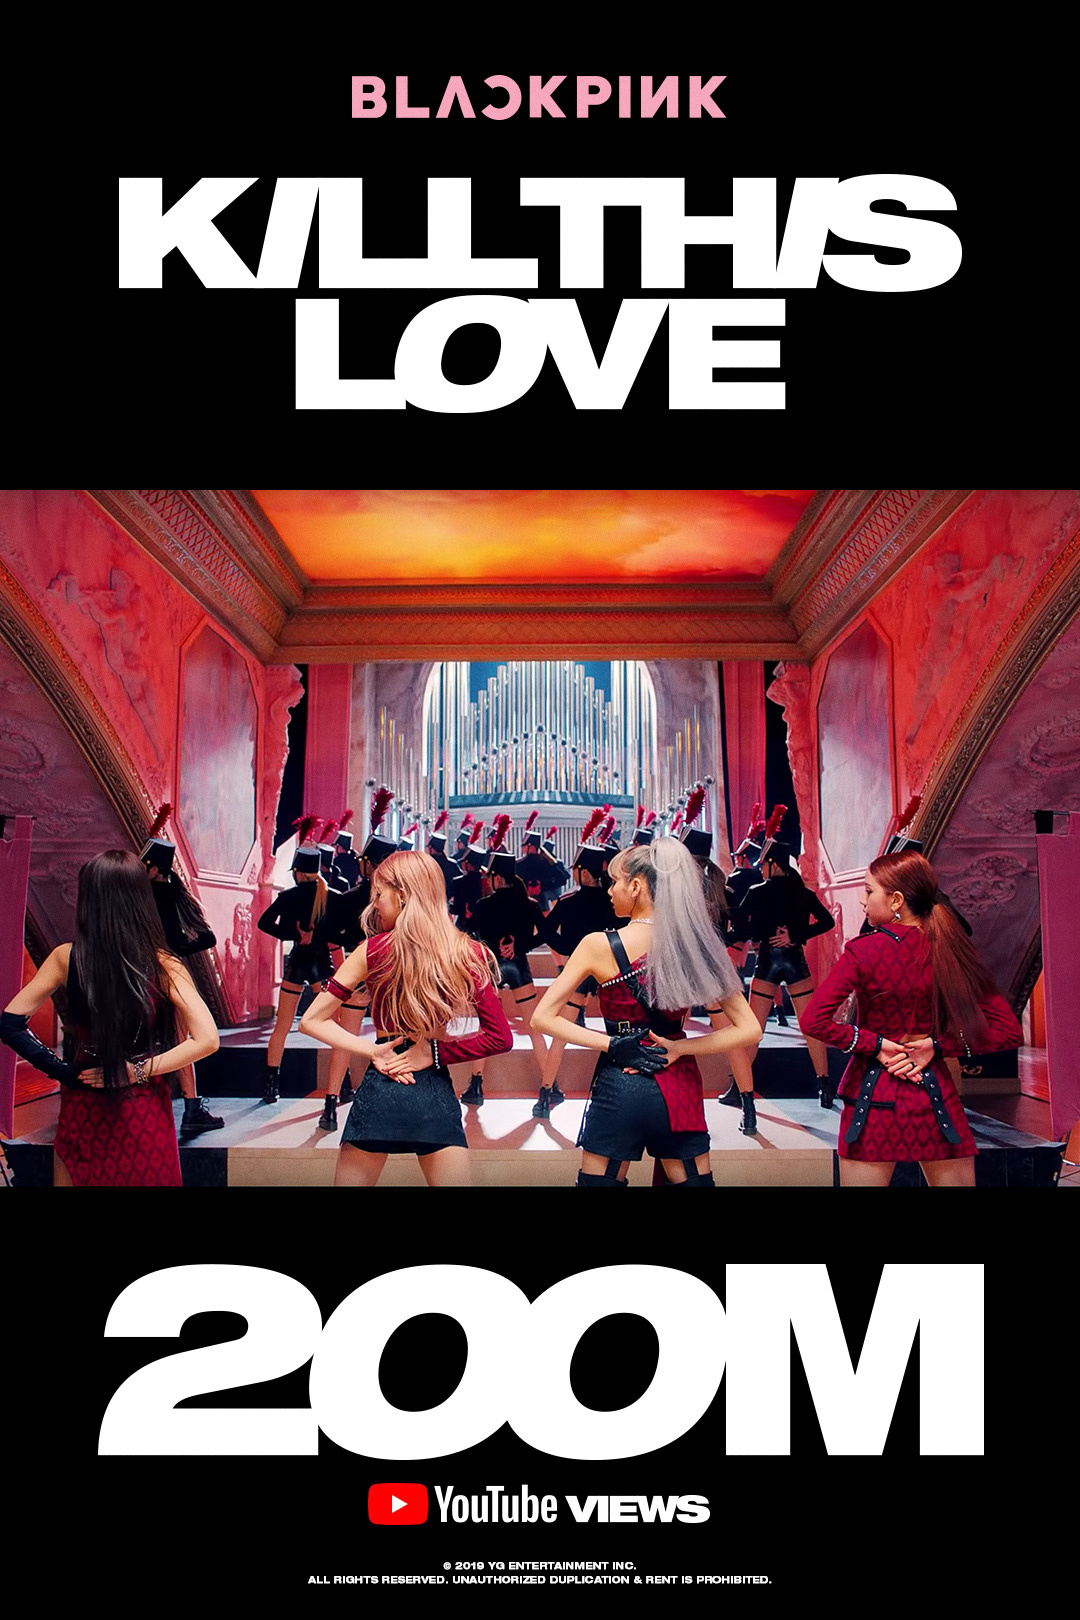 BLACKPINK《KILL THIS LOVE》 MV点击数突破2亿